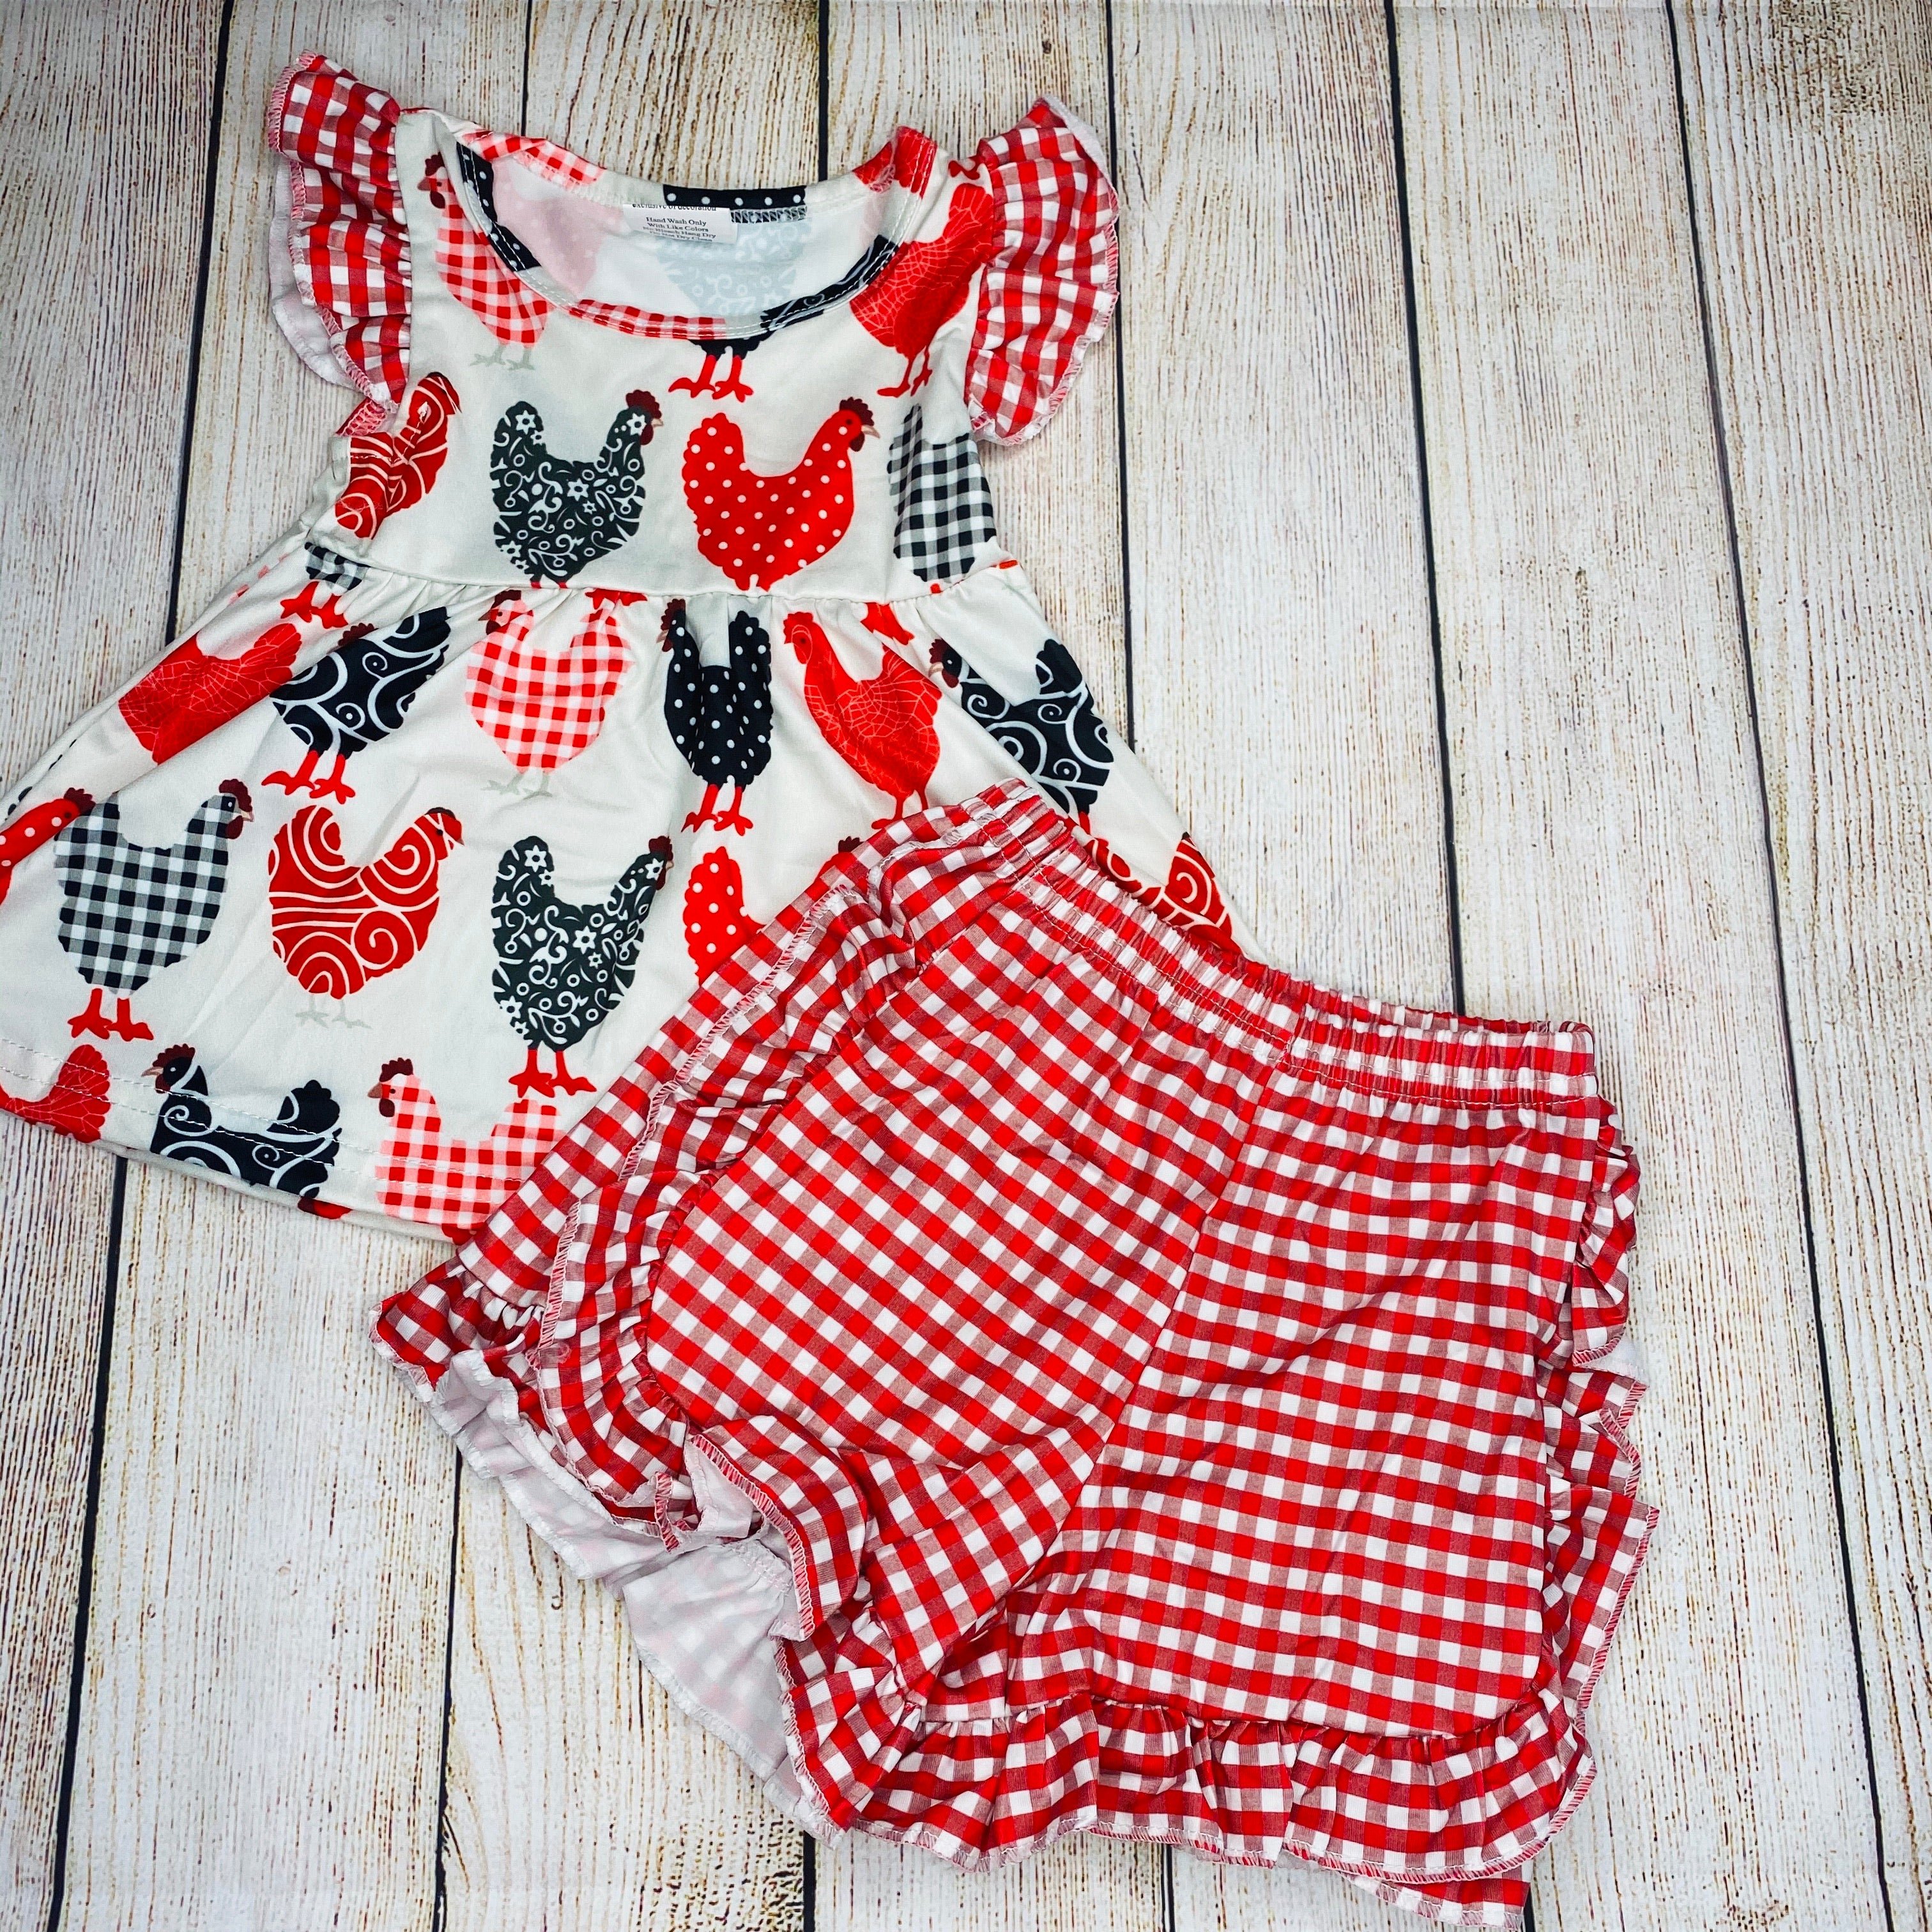 Red Gingham Chicken Ruffle Outfit